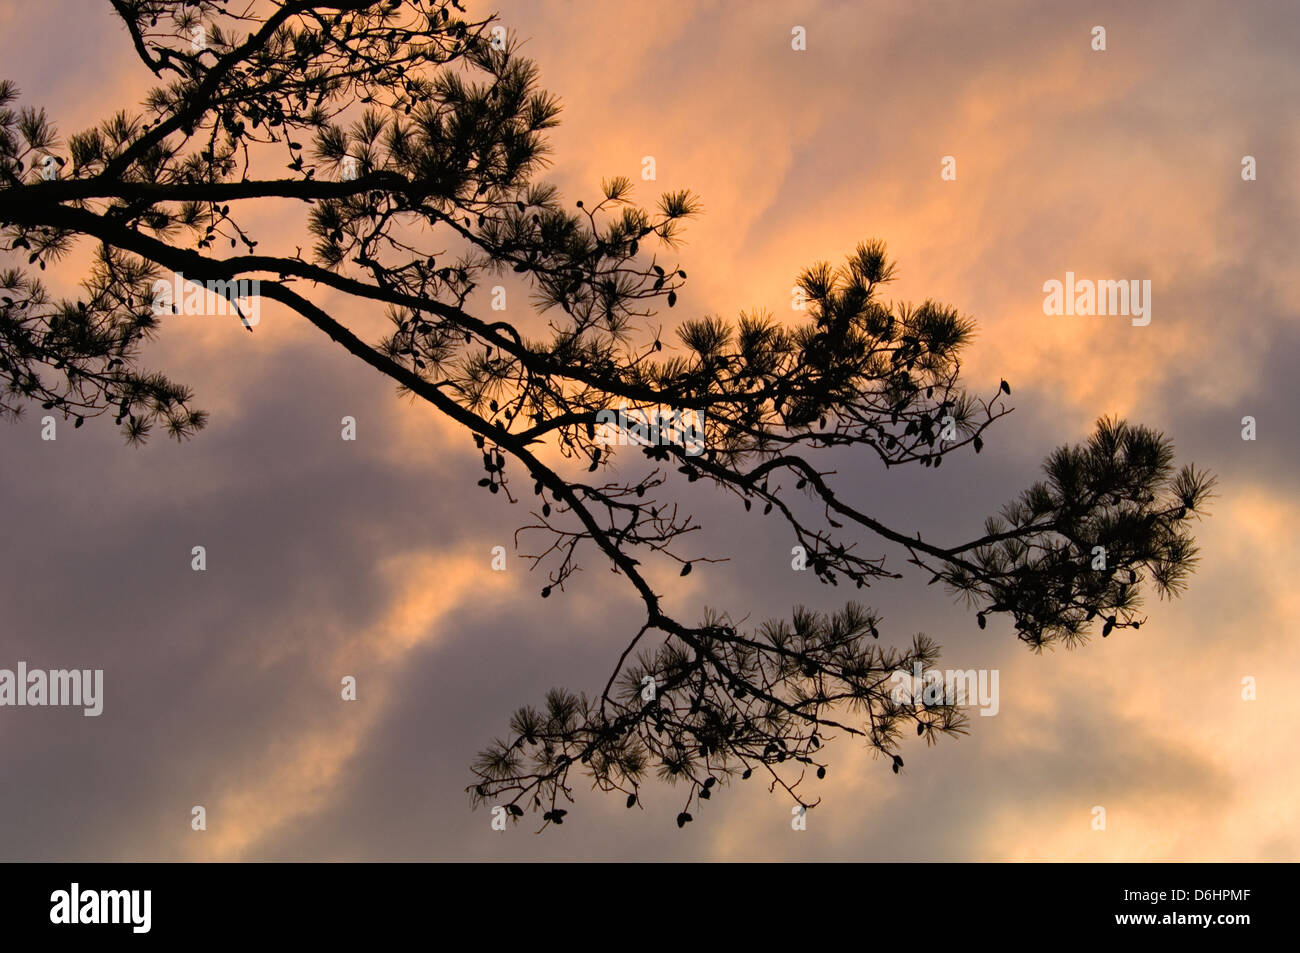 Pine Tree Branch Silhouetted Against Sunset at Cumberland Falls State Park in Kentucky - Stock Image